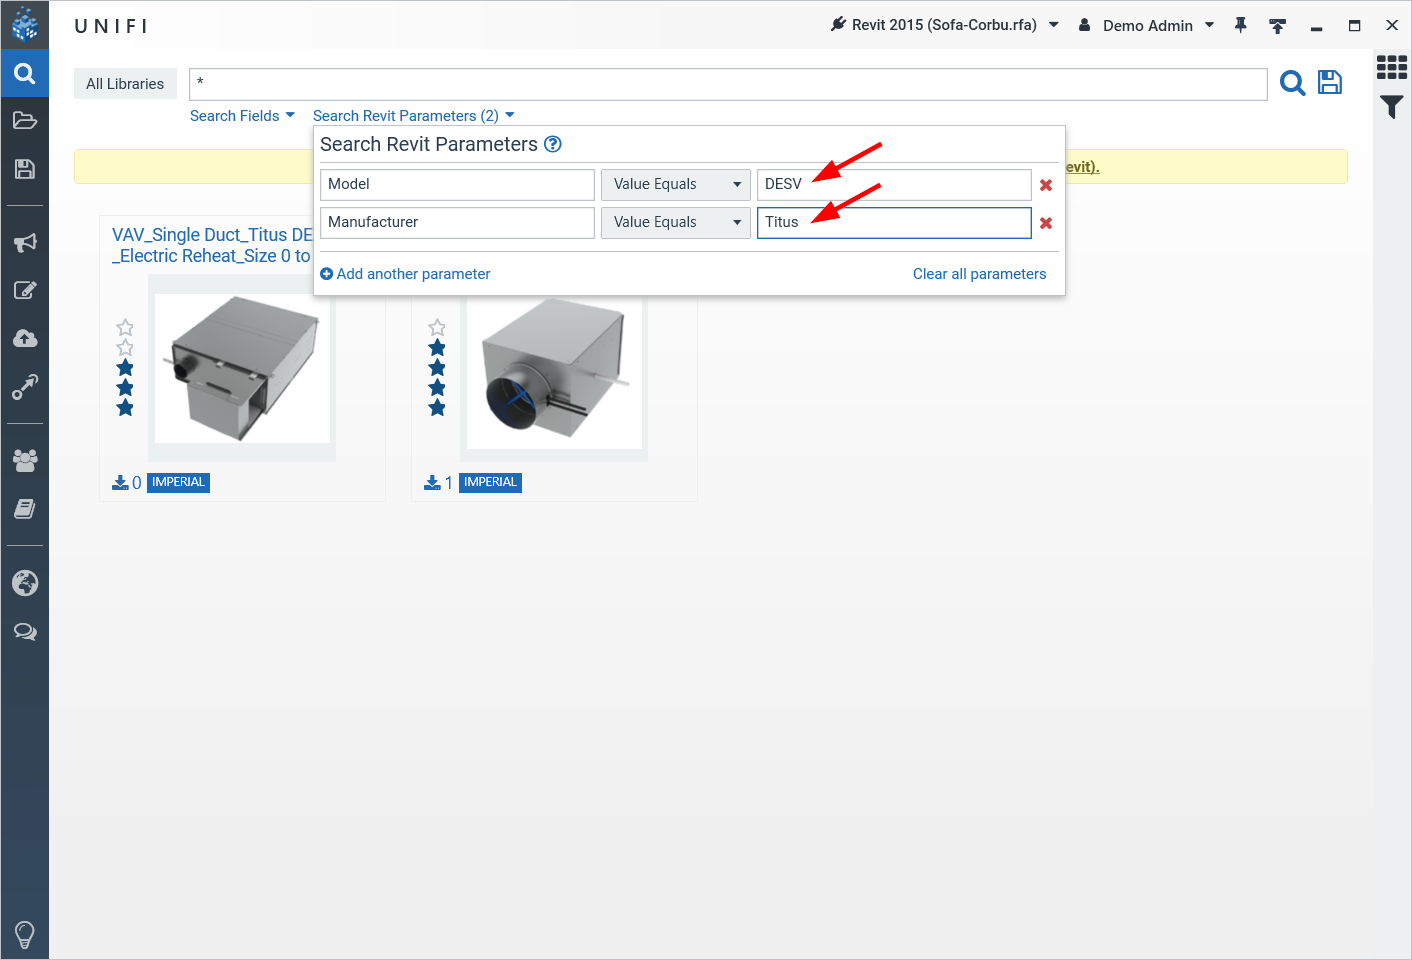 Search Revit Parameters: A New UNIFI Feature - UNIFI